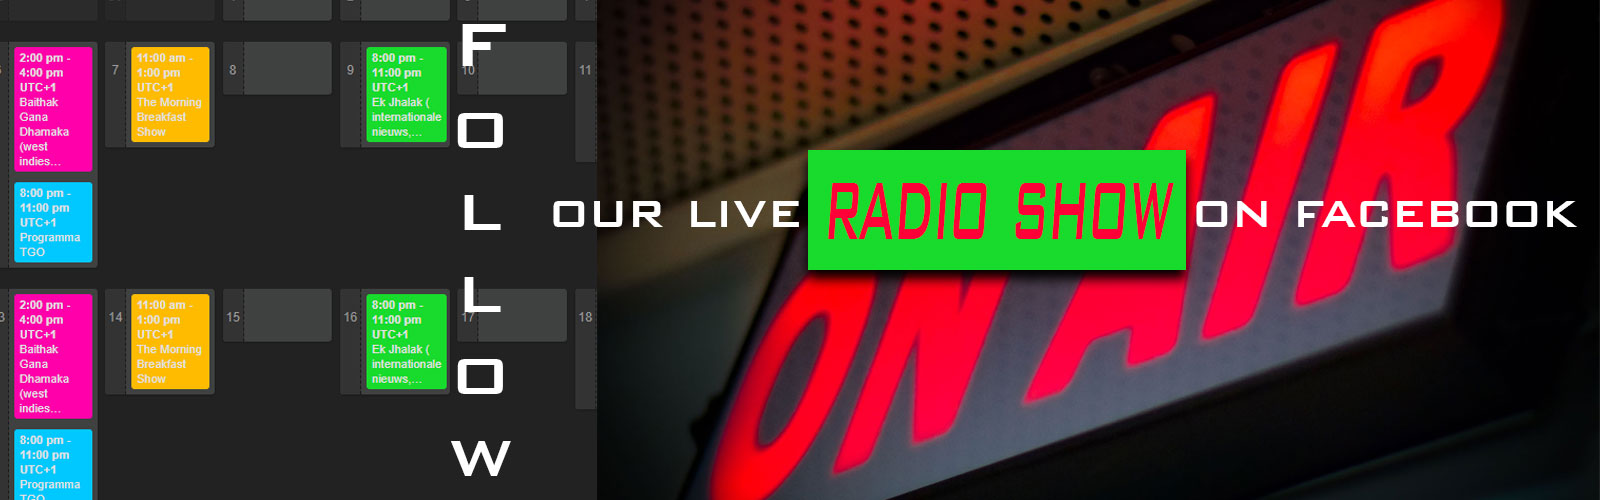 Follow_Live_RadioShow